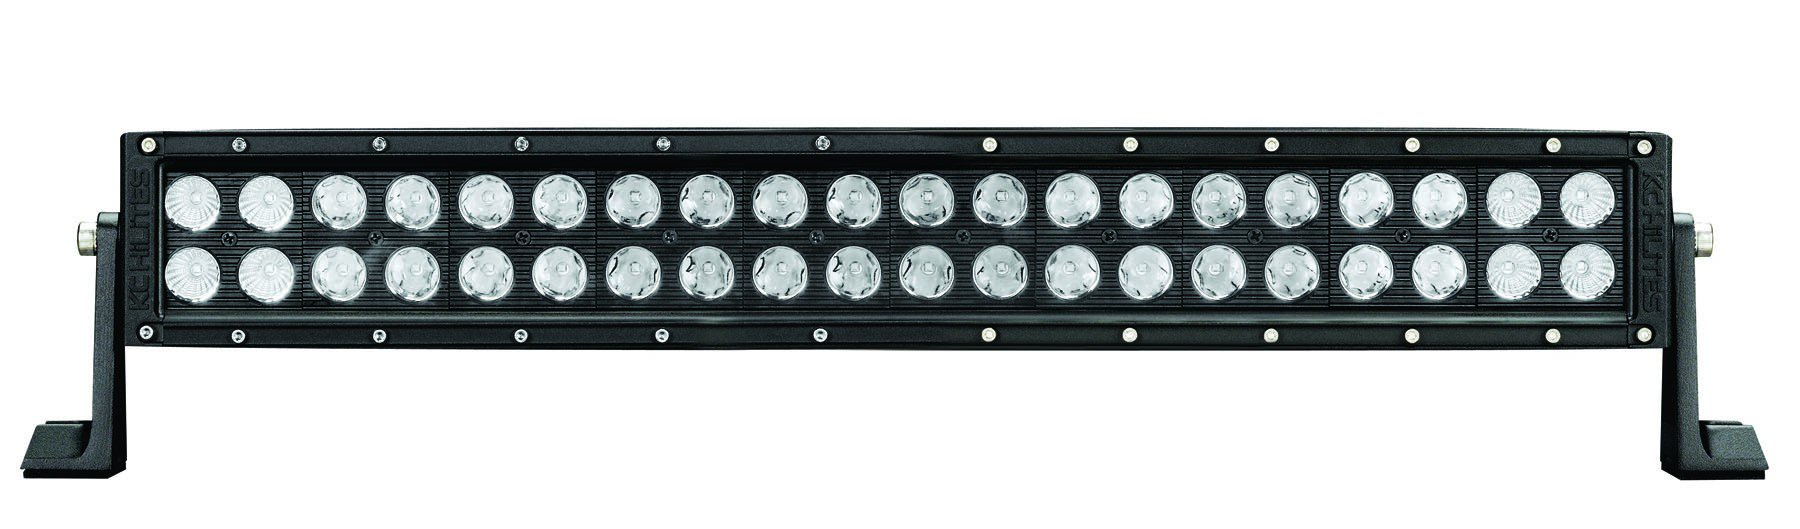 "KC HiLiTES C-Series LED - 20"" Bar Combo Spot / Spread - Black"